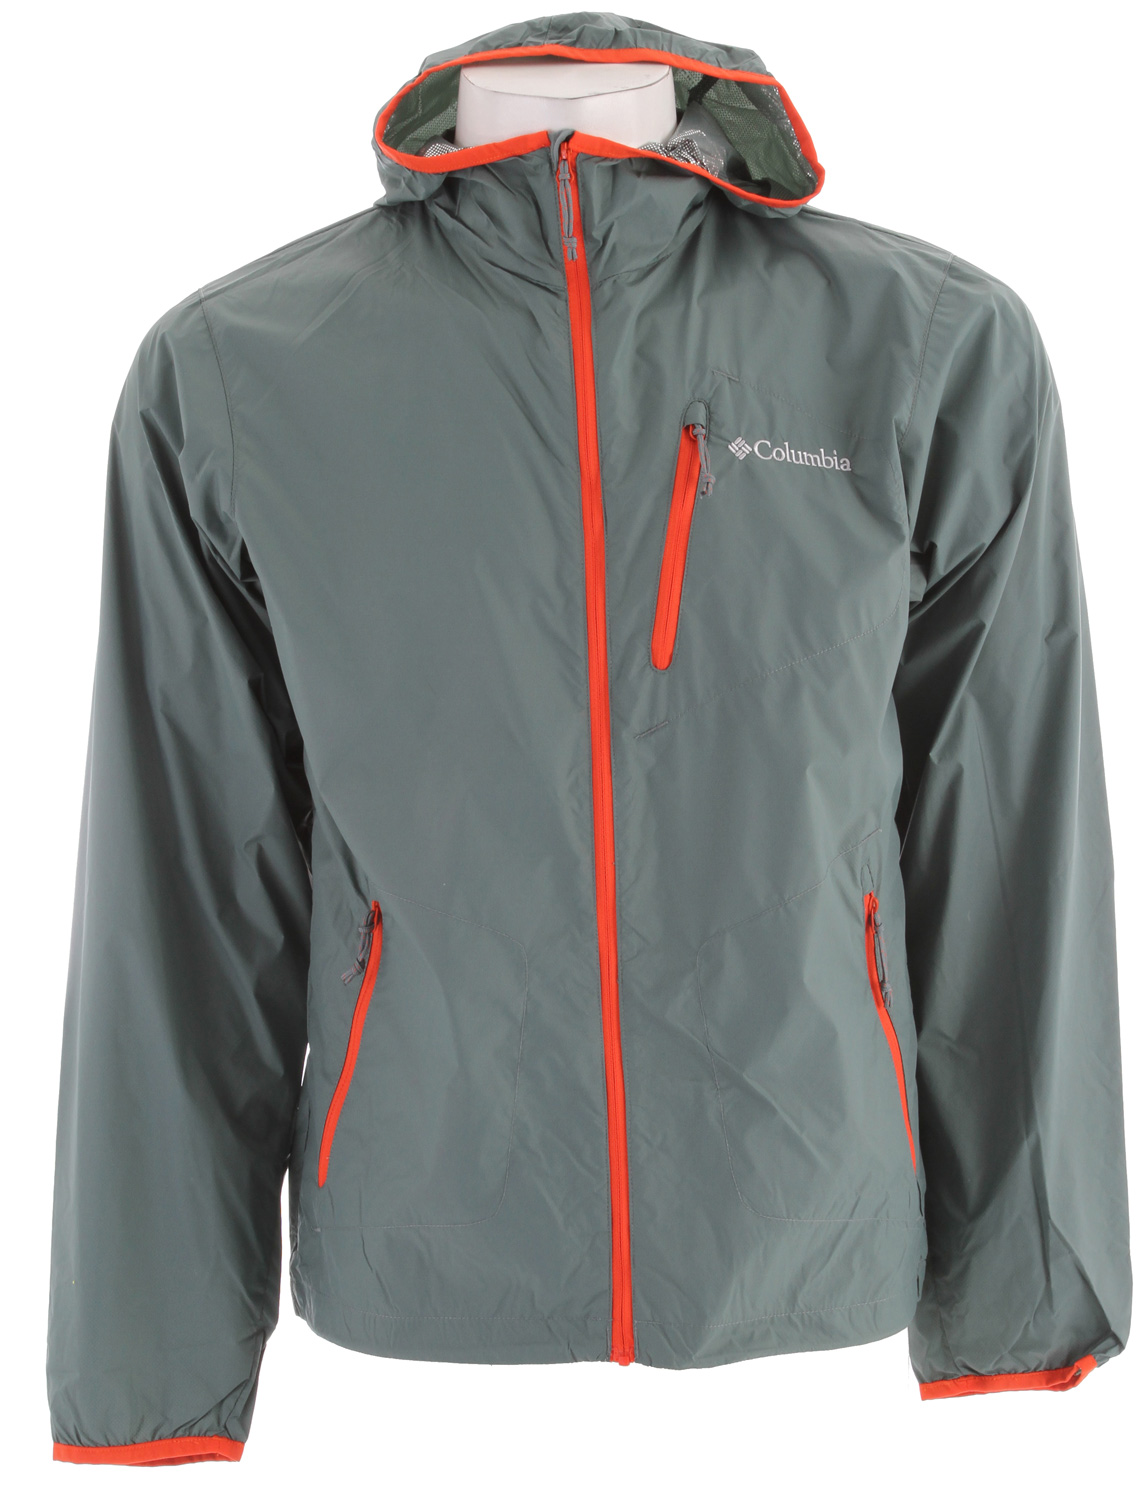 Columbia Trail Fire Jacket Metal/Bronco - $68.95